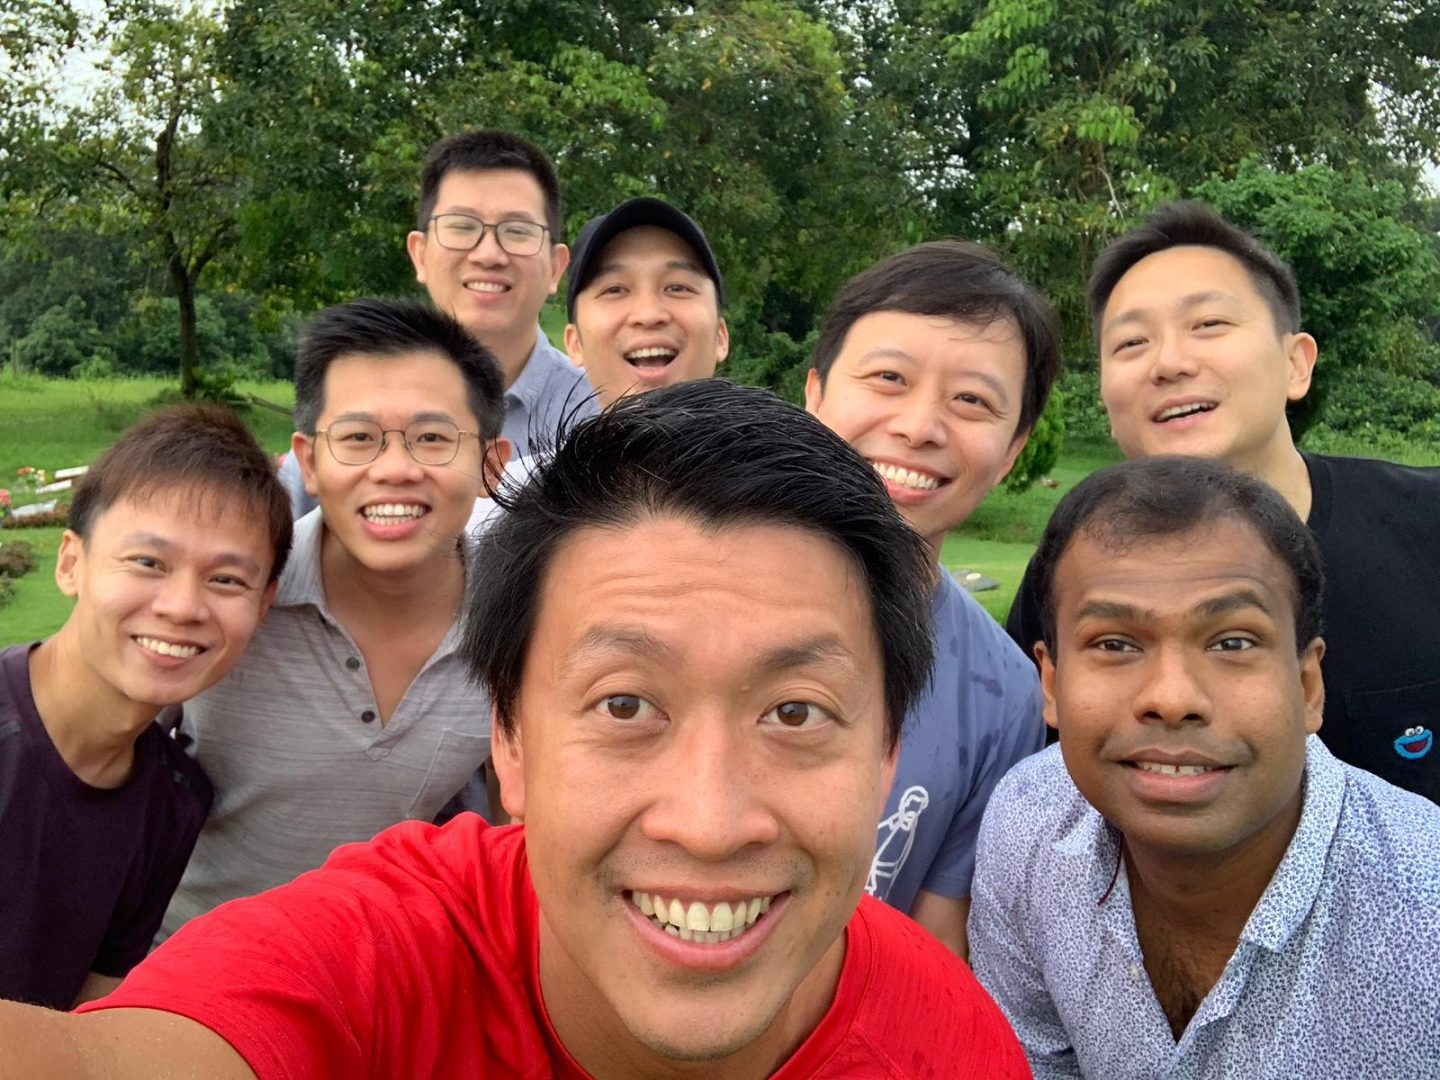 Morgan (back row, second from right) and some of his classmates who meet up yearly. Photo courtesy of Morgan Zhou.